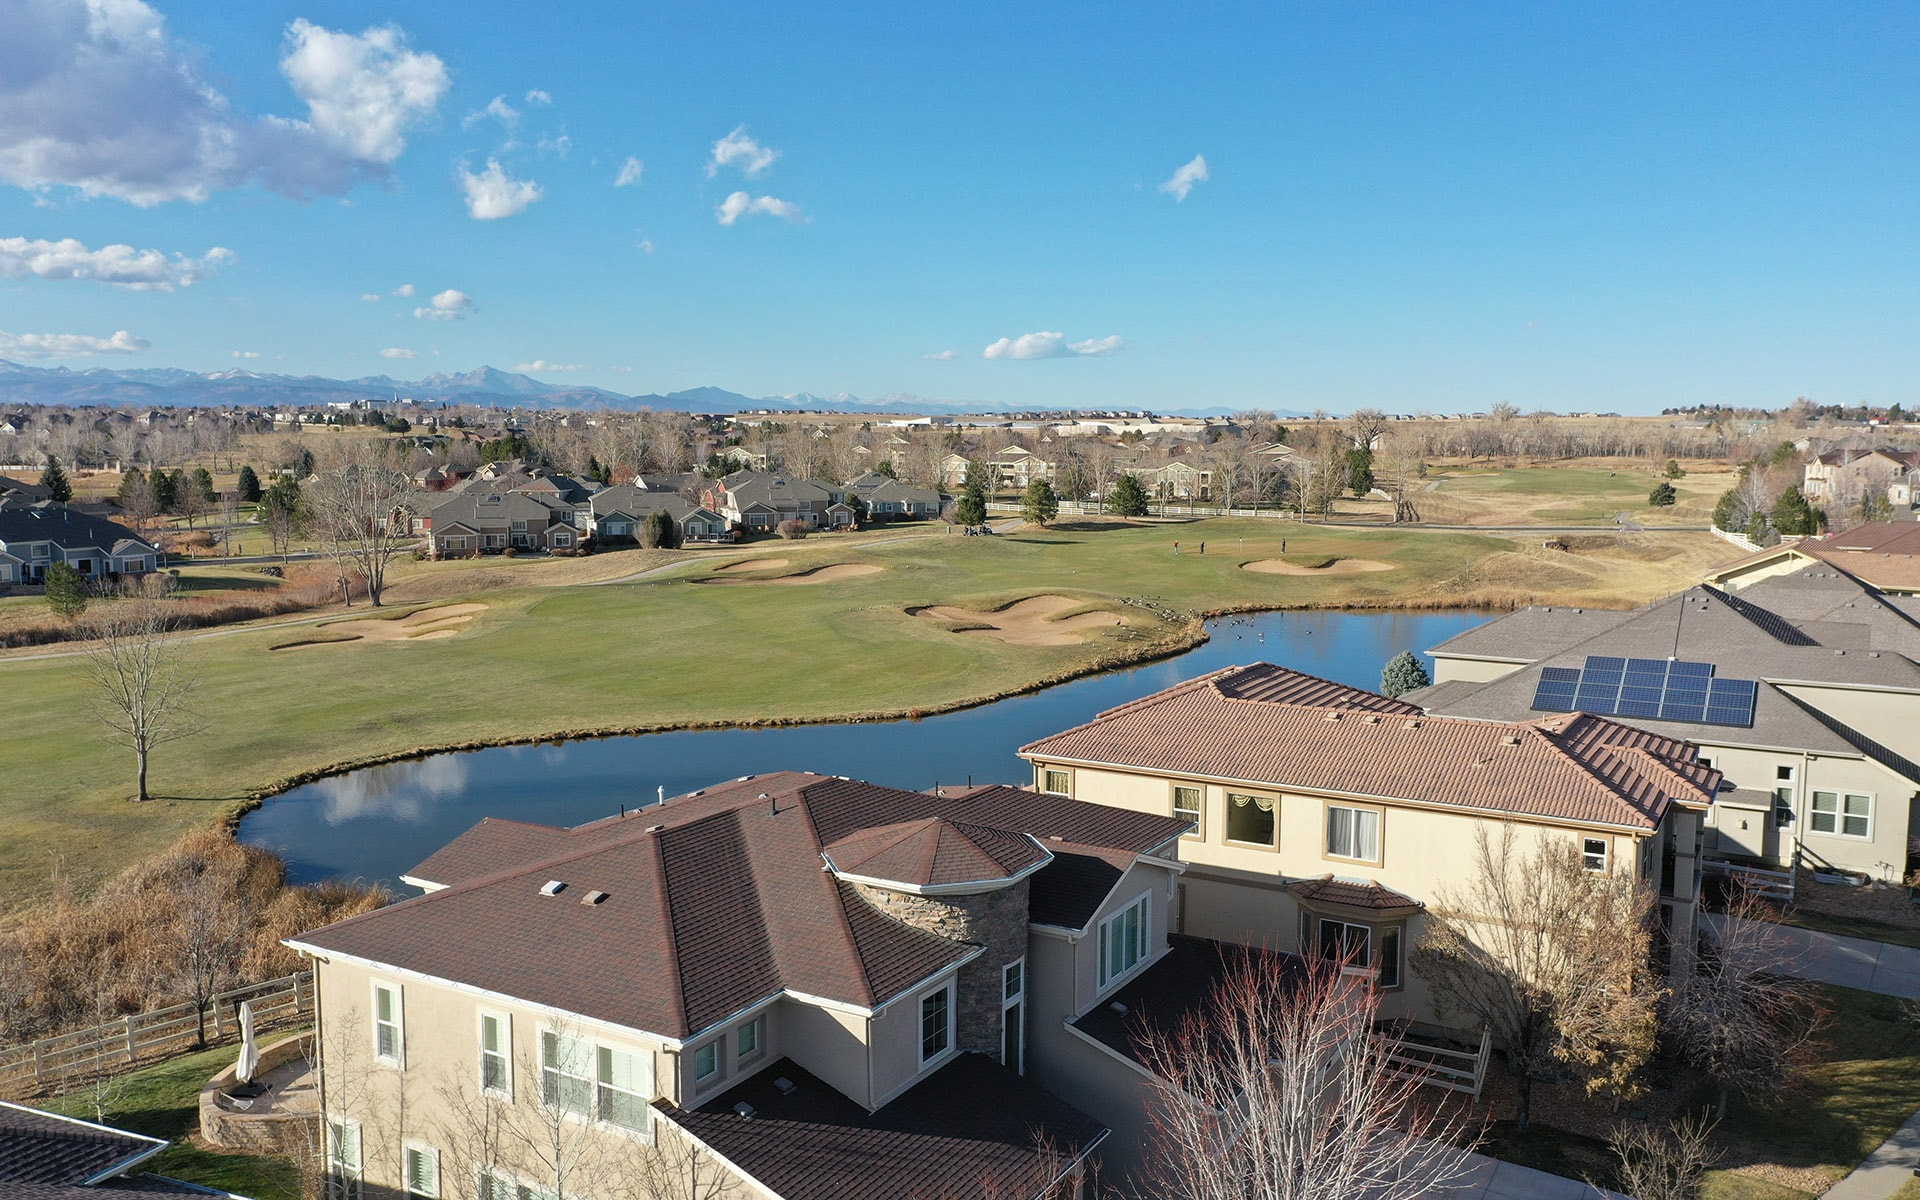 Aerial photo of a several large houses in the foreground with a golf course in the background in Broomfield, Colorado